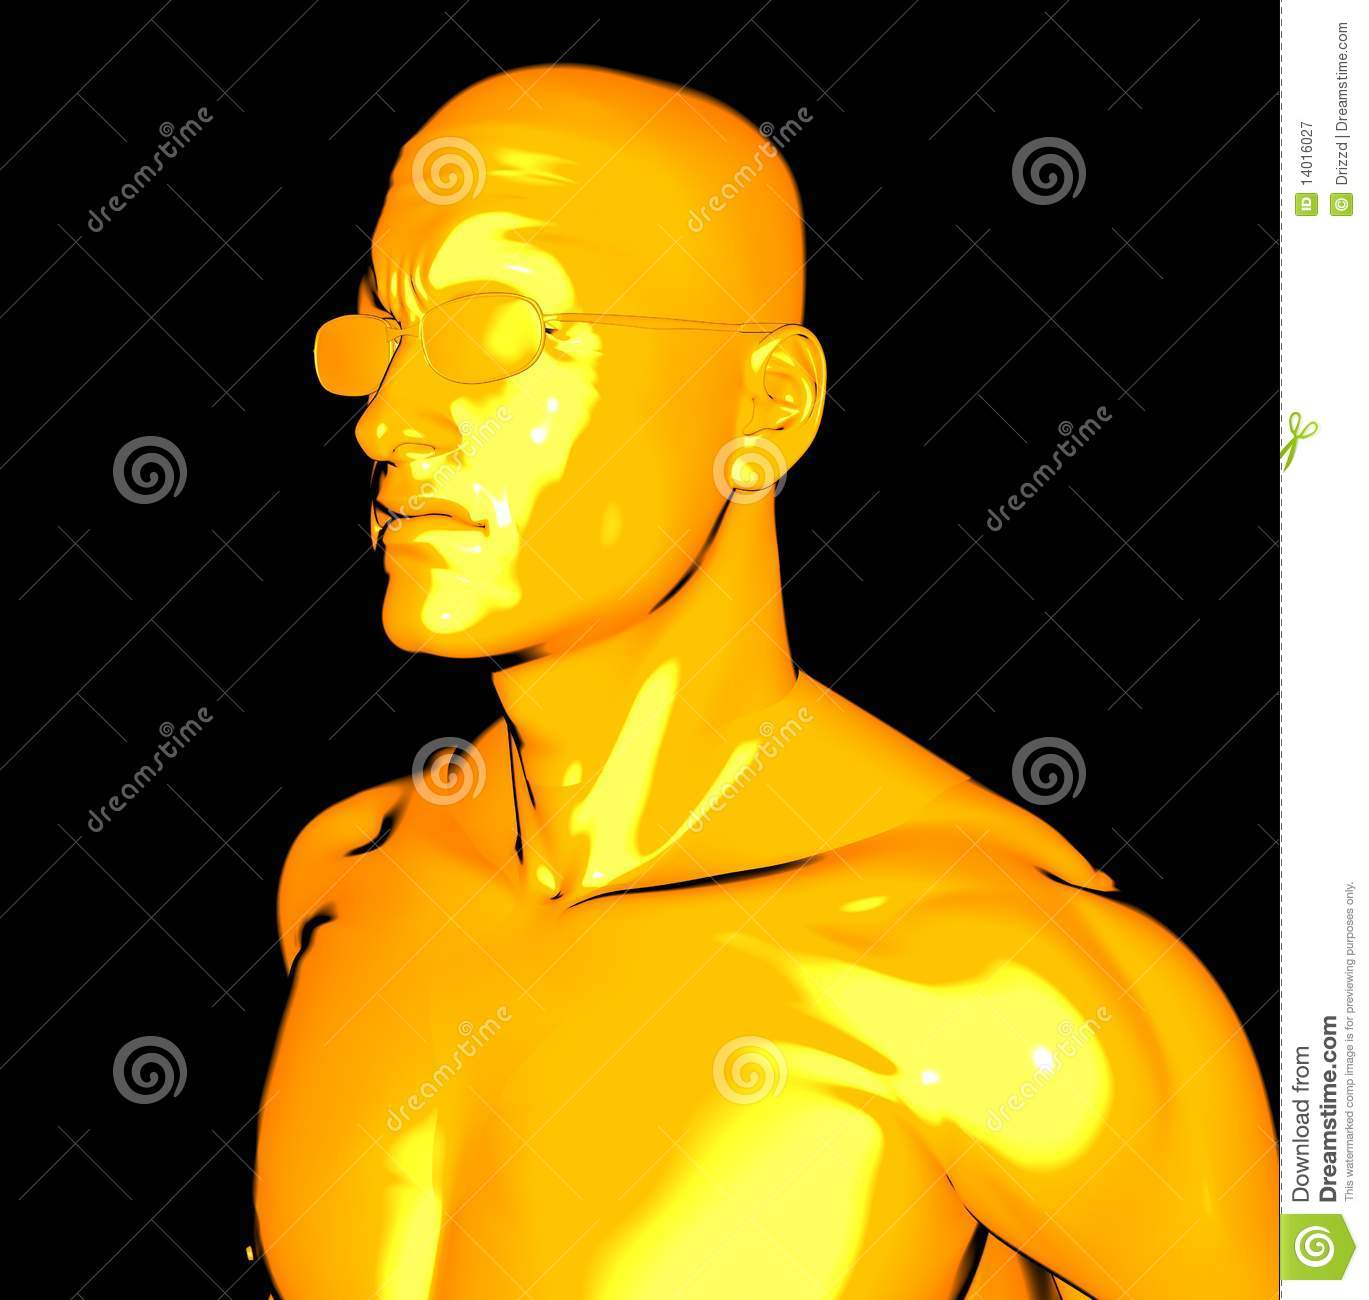 Yellow Man Royalty Free Stock Photography - Image: 14016027